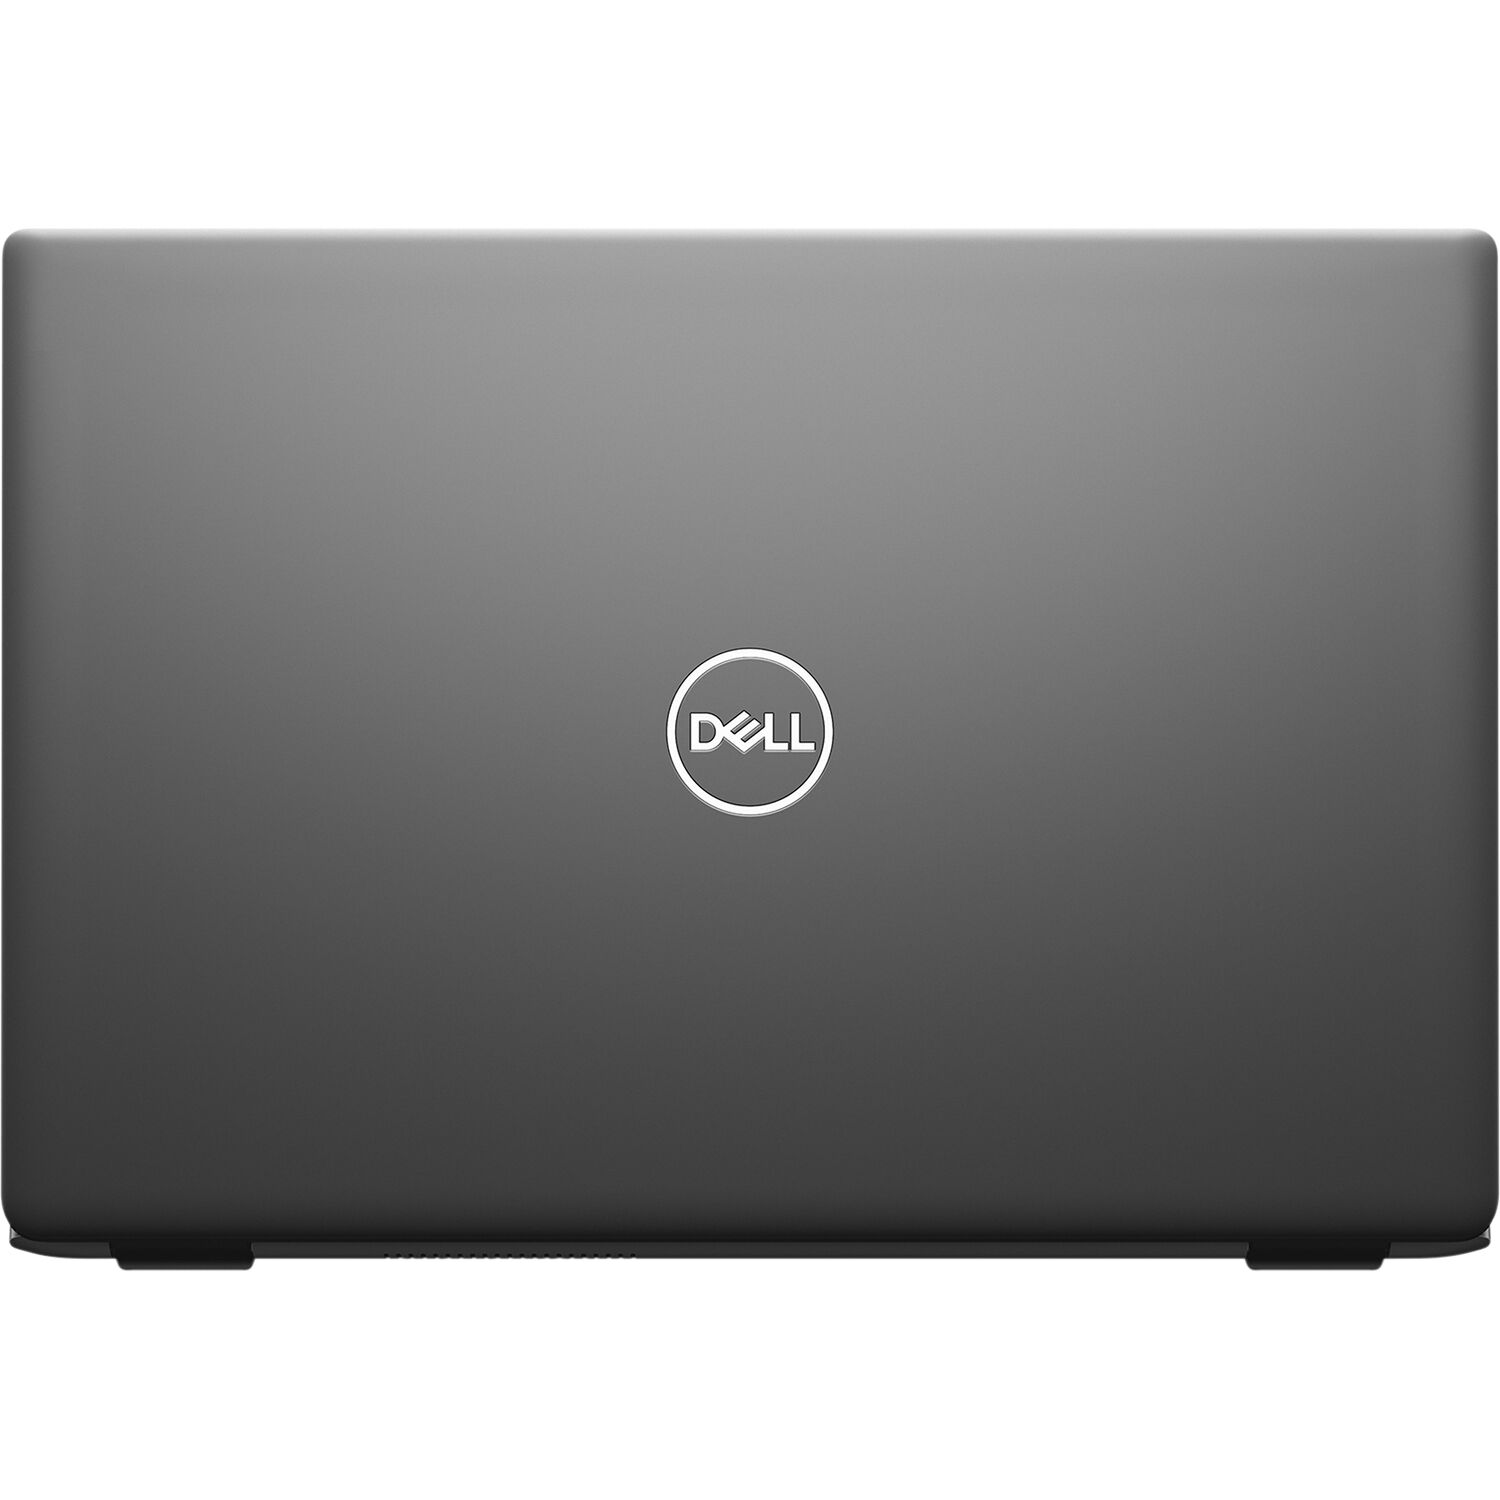 Dell Latitude 3510 i7 256GB SSD WiFi + Cellular Data Unlocked And 5 Years Pro Support